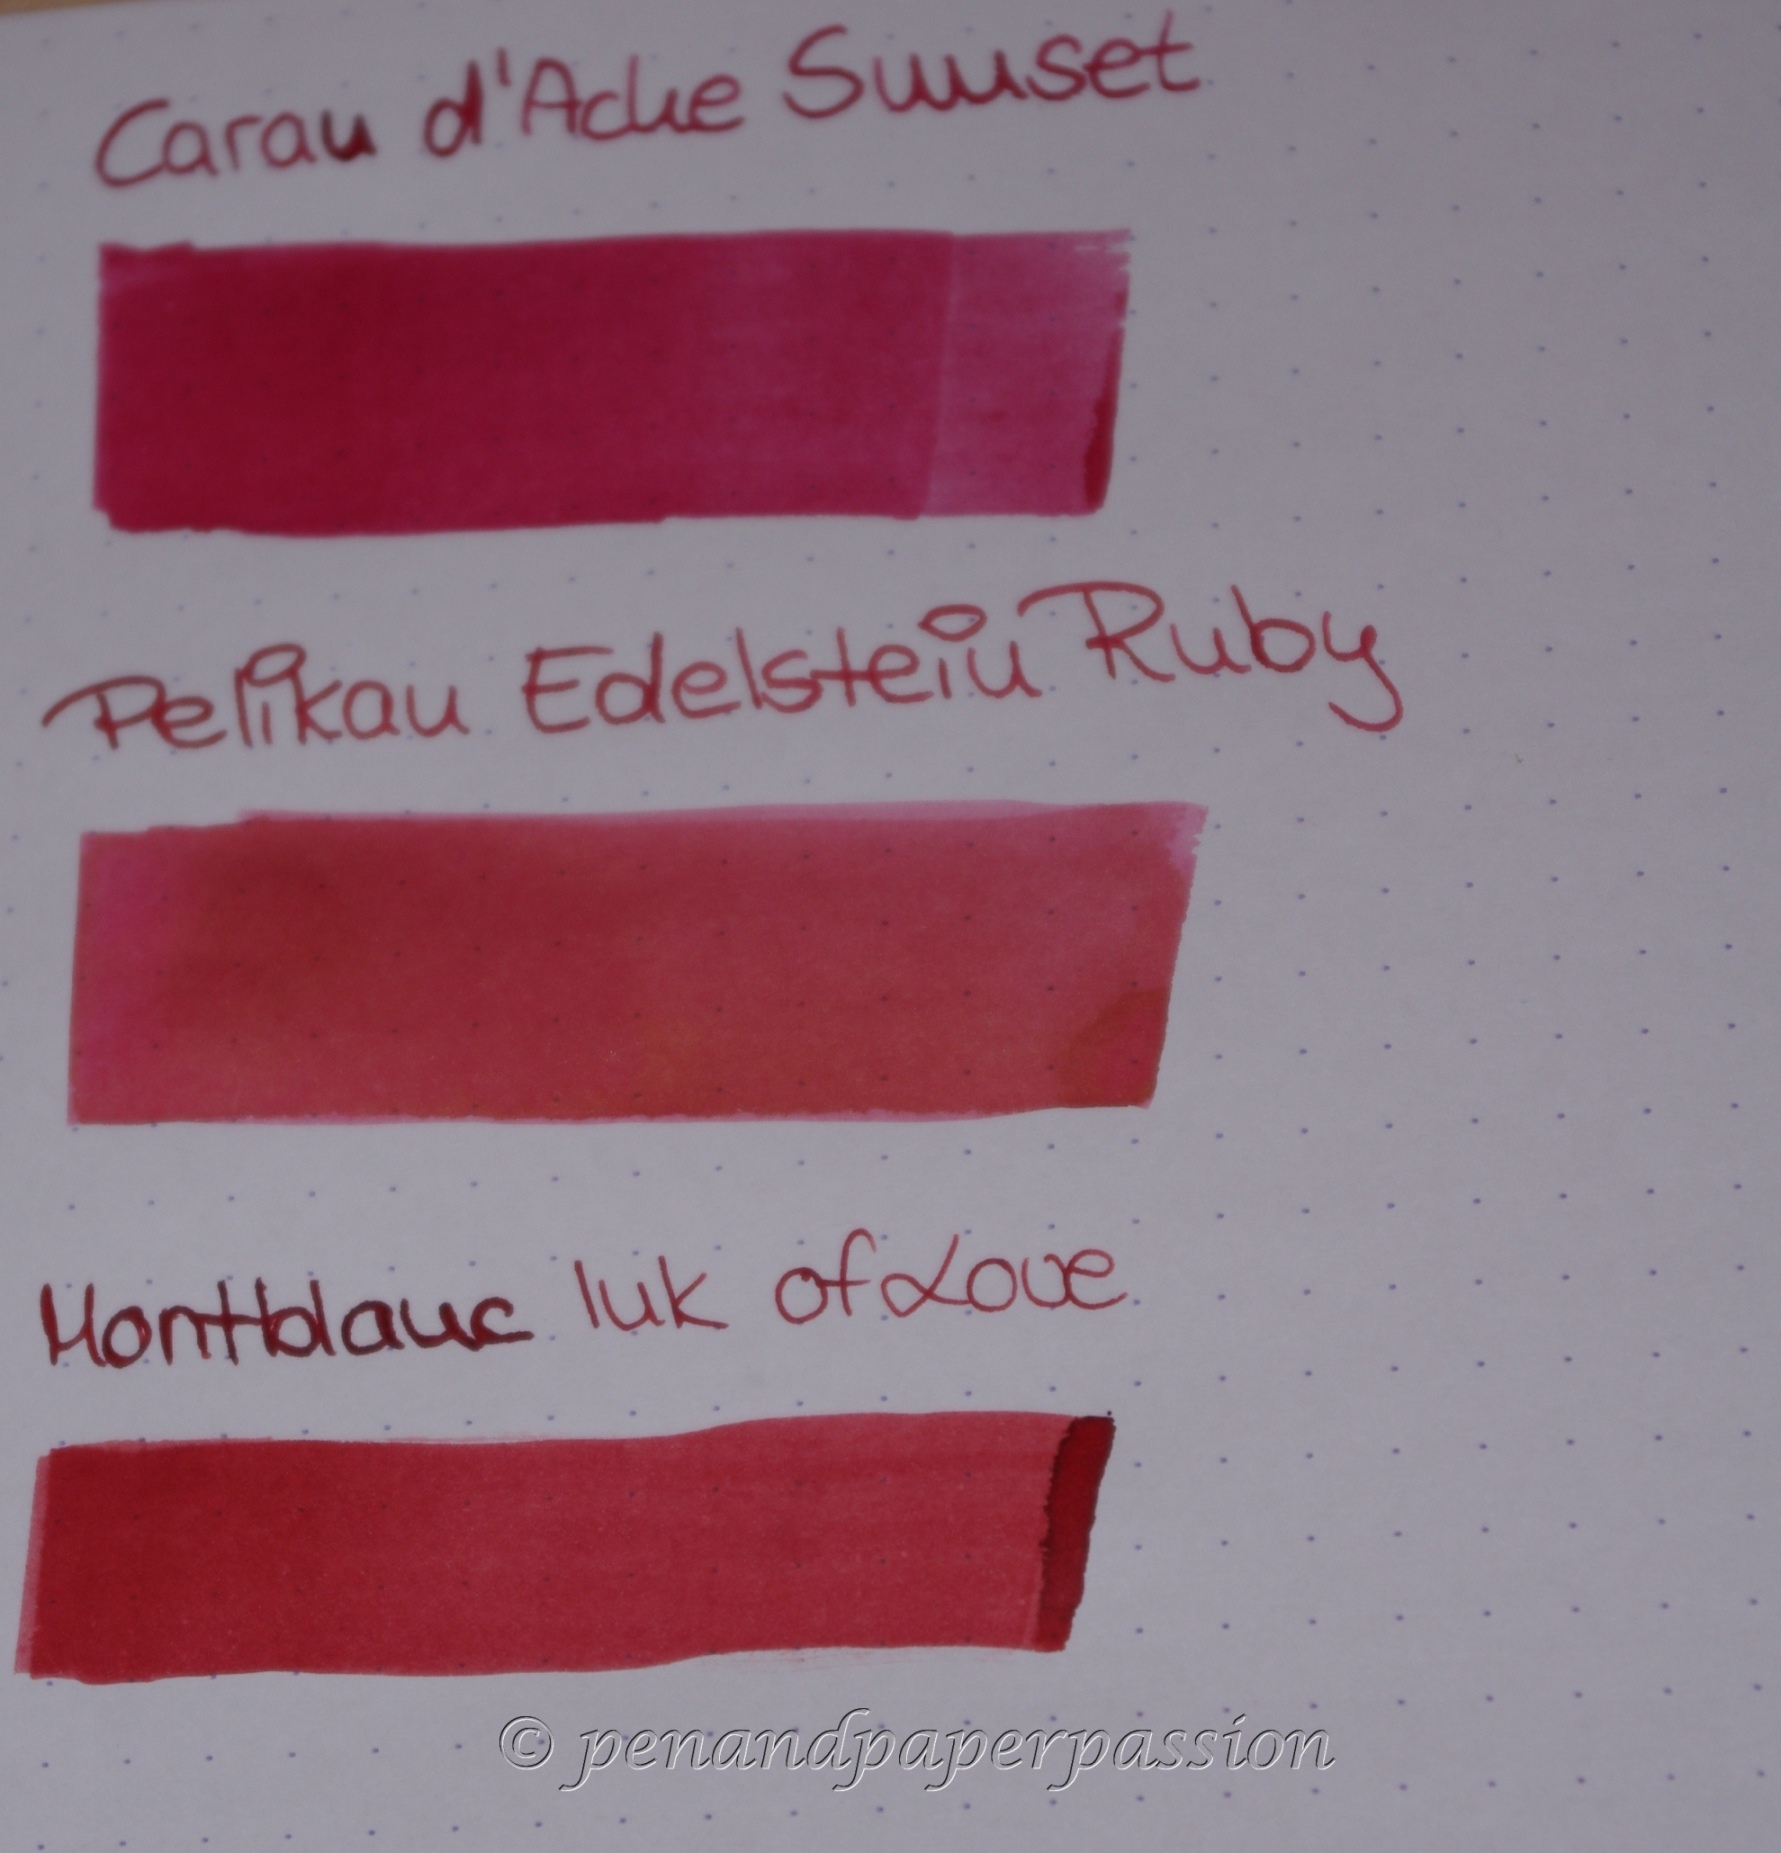 3 Rote - Caran d'Ache Sunset, Pelikan ES Ruby, MB Ink of Love 1